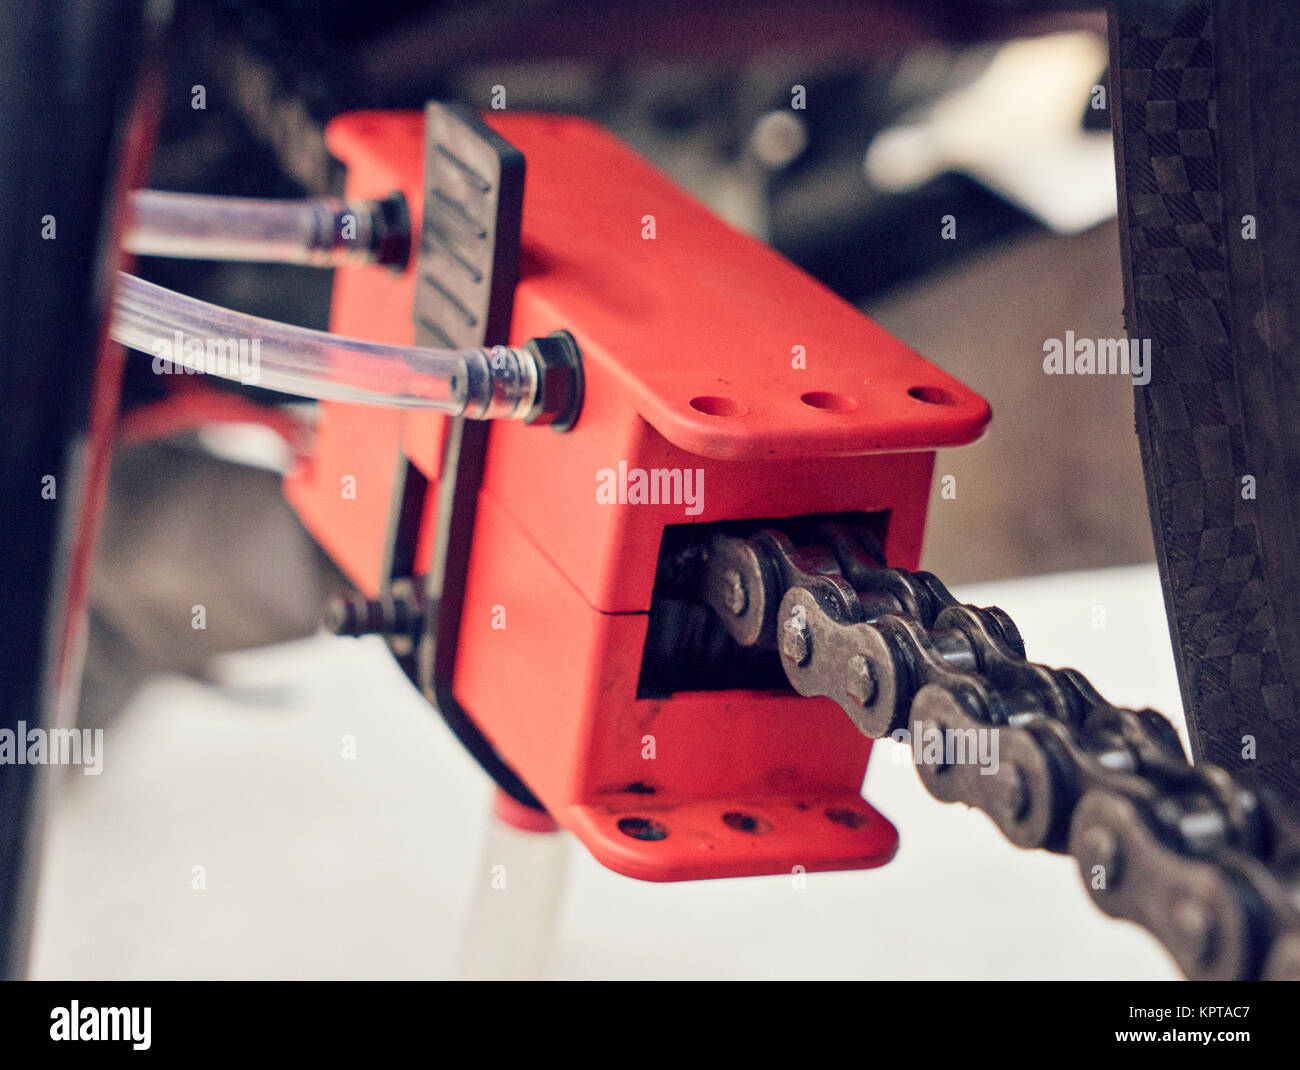 Close up chain manual cleaning device - Stock Image